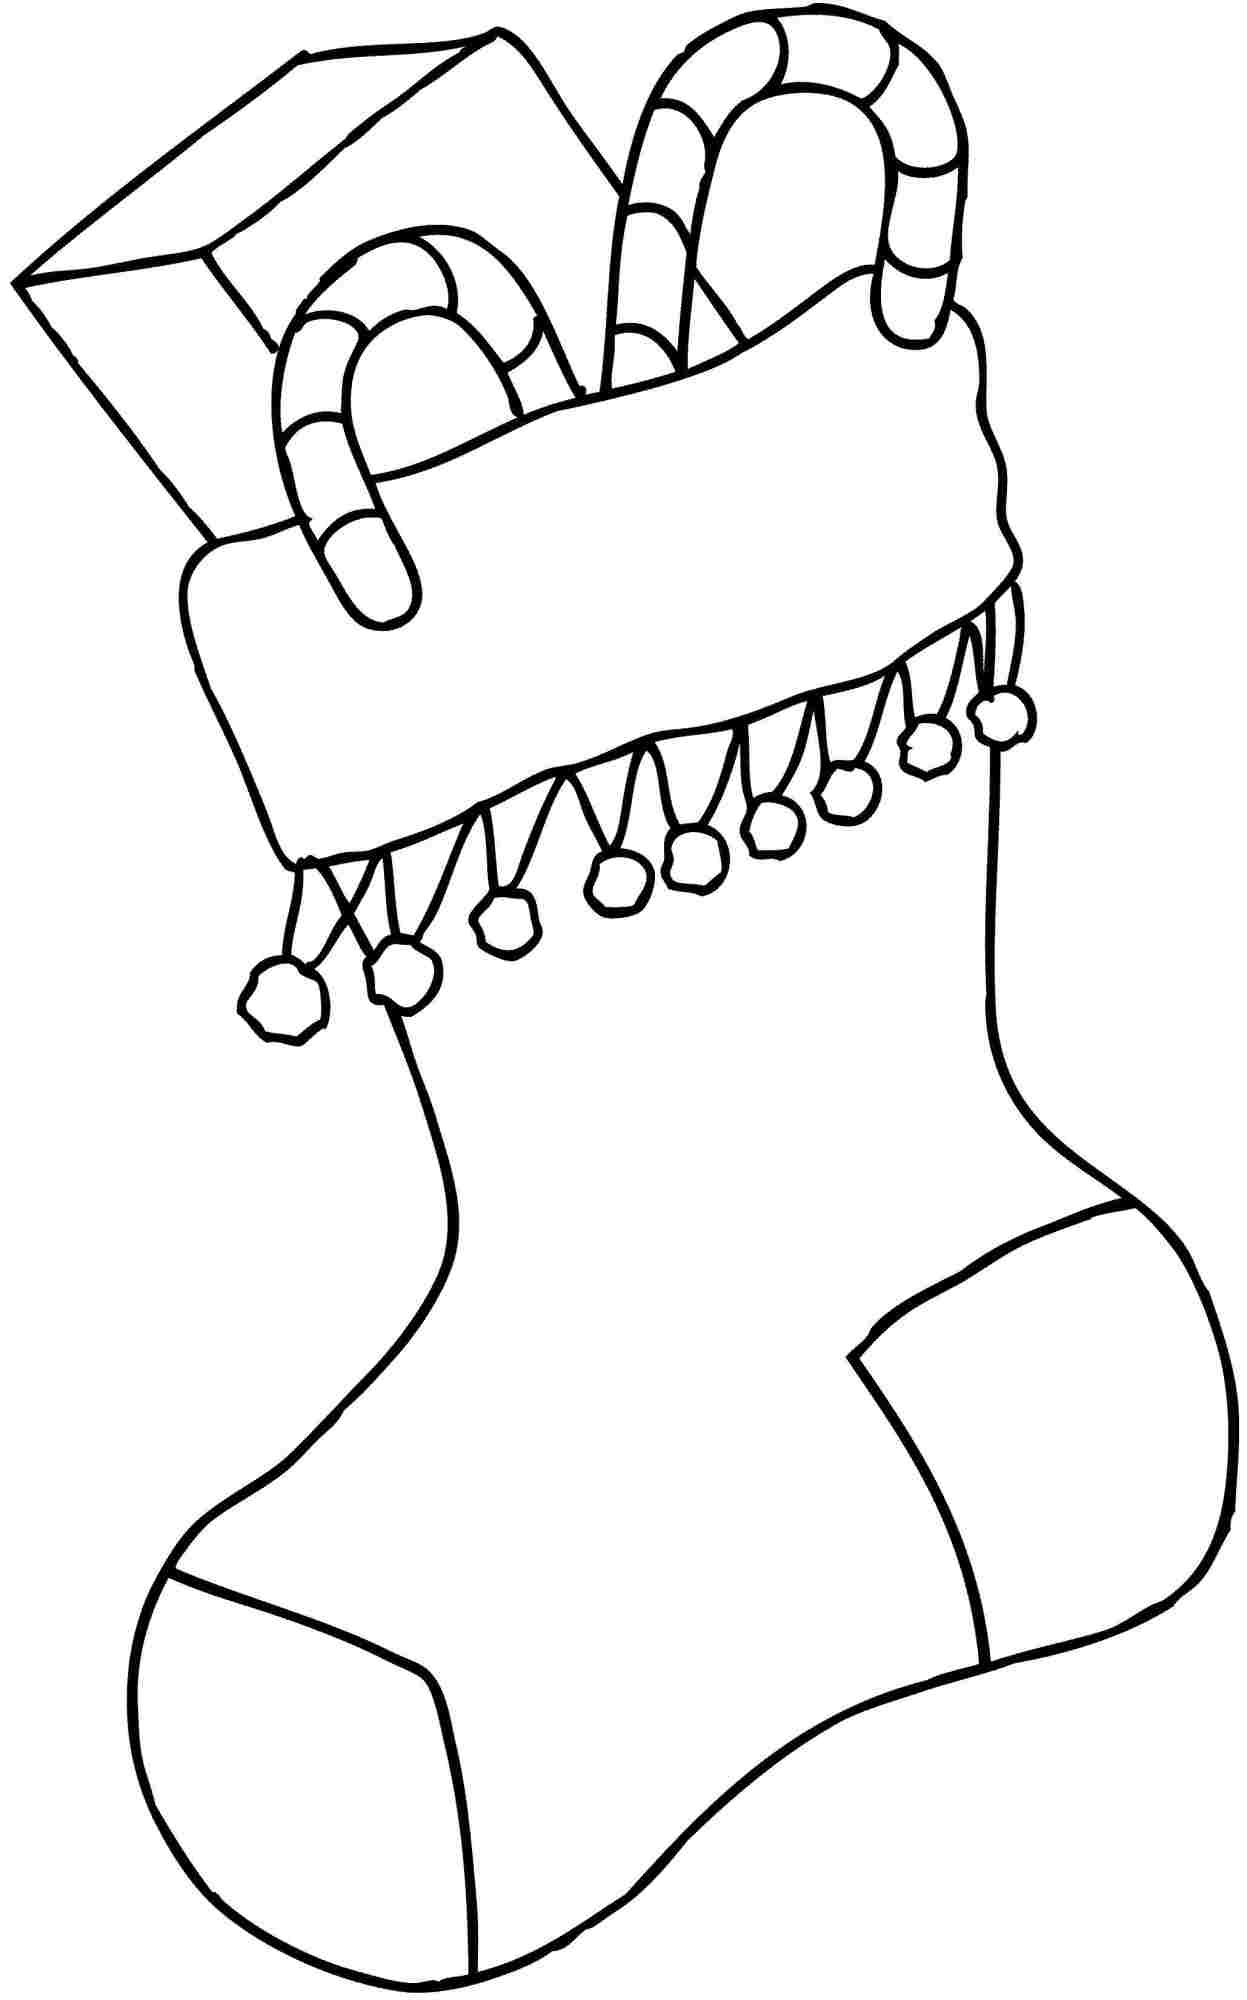 coloring pages on christmas - photo#32